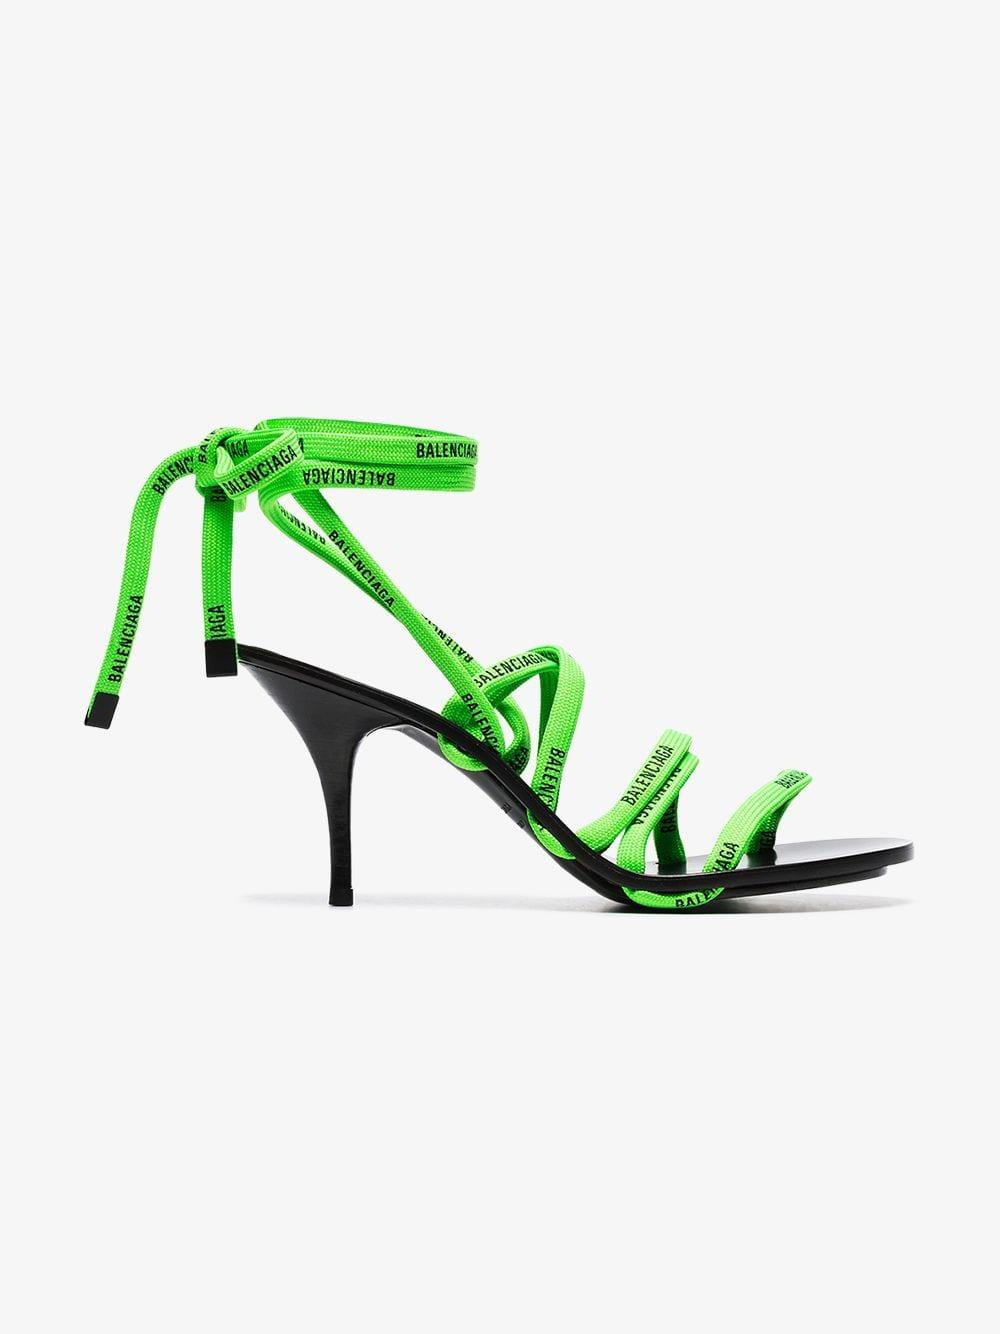 4993d2f4c9aa Balenciaga - Green And Black 110 Logo Laces Cotton And Leather Sandals -  Lyst. View fullscreen